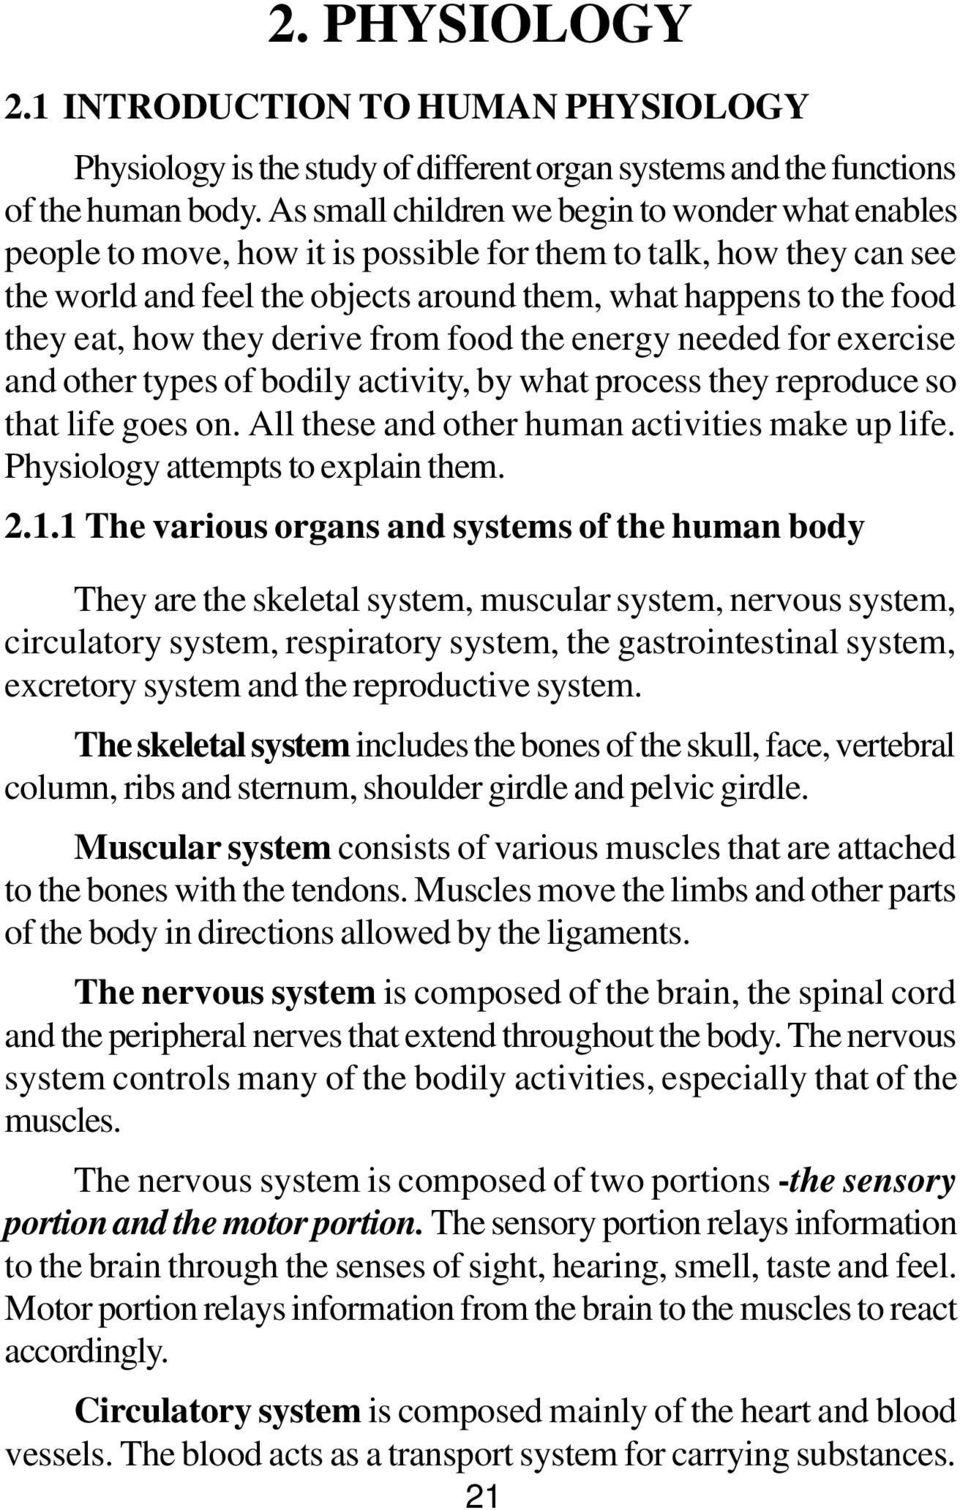 Information On Muscular System Kefei04